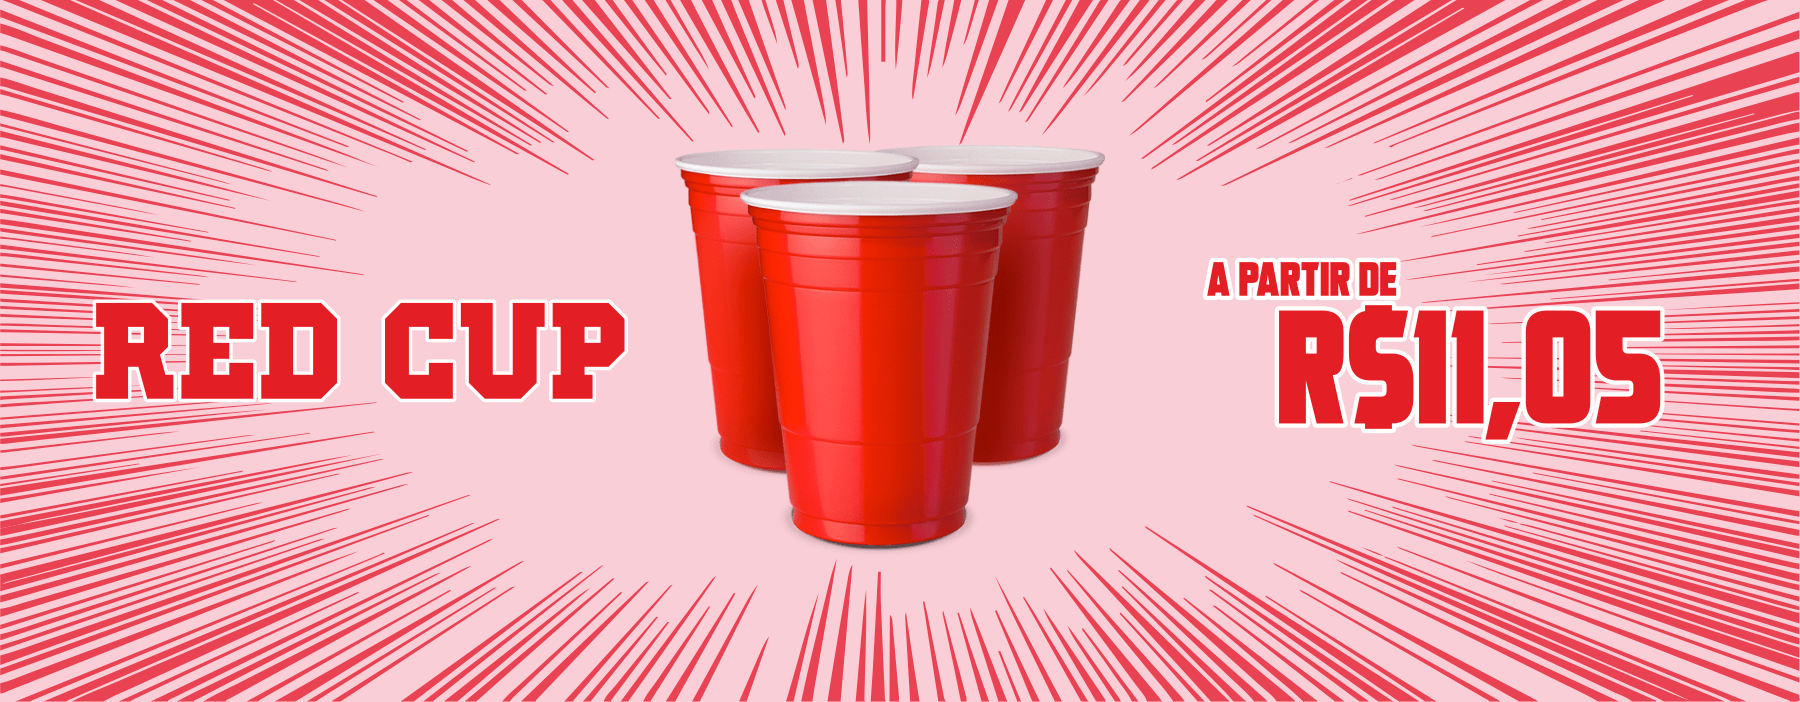 red cup home